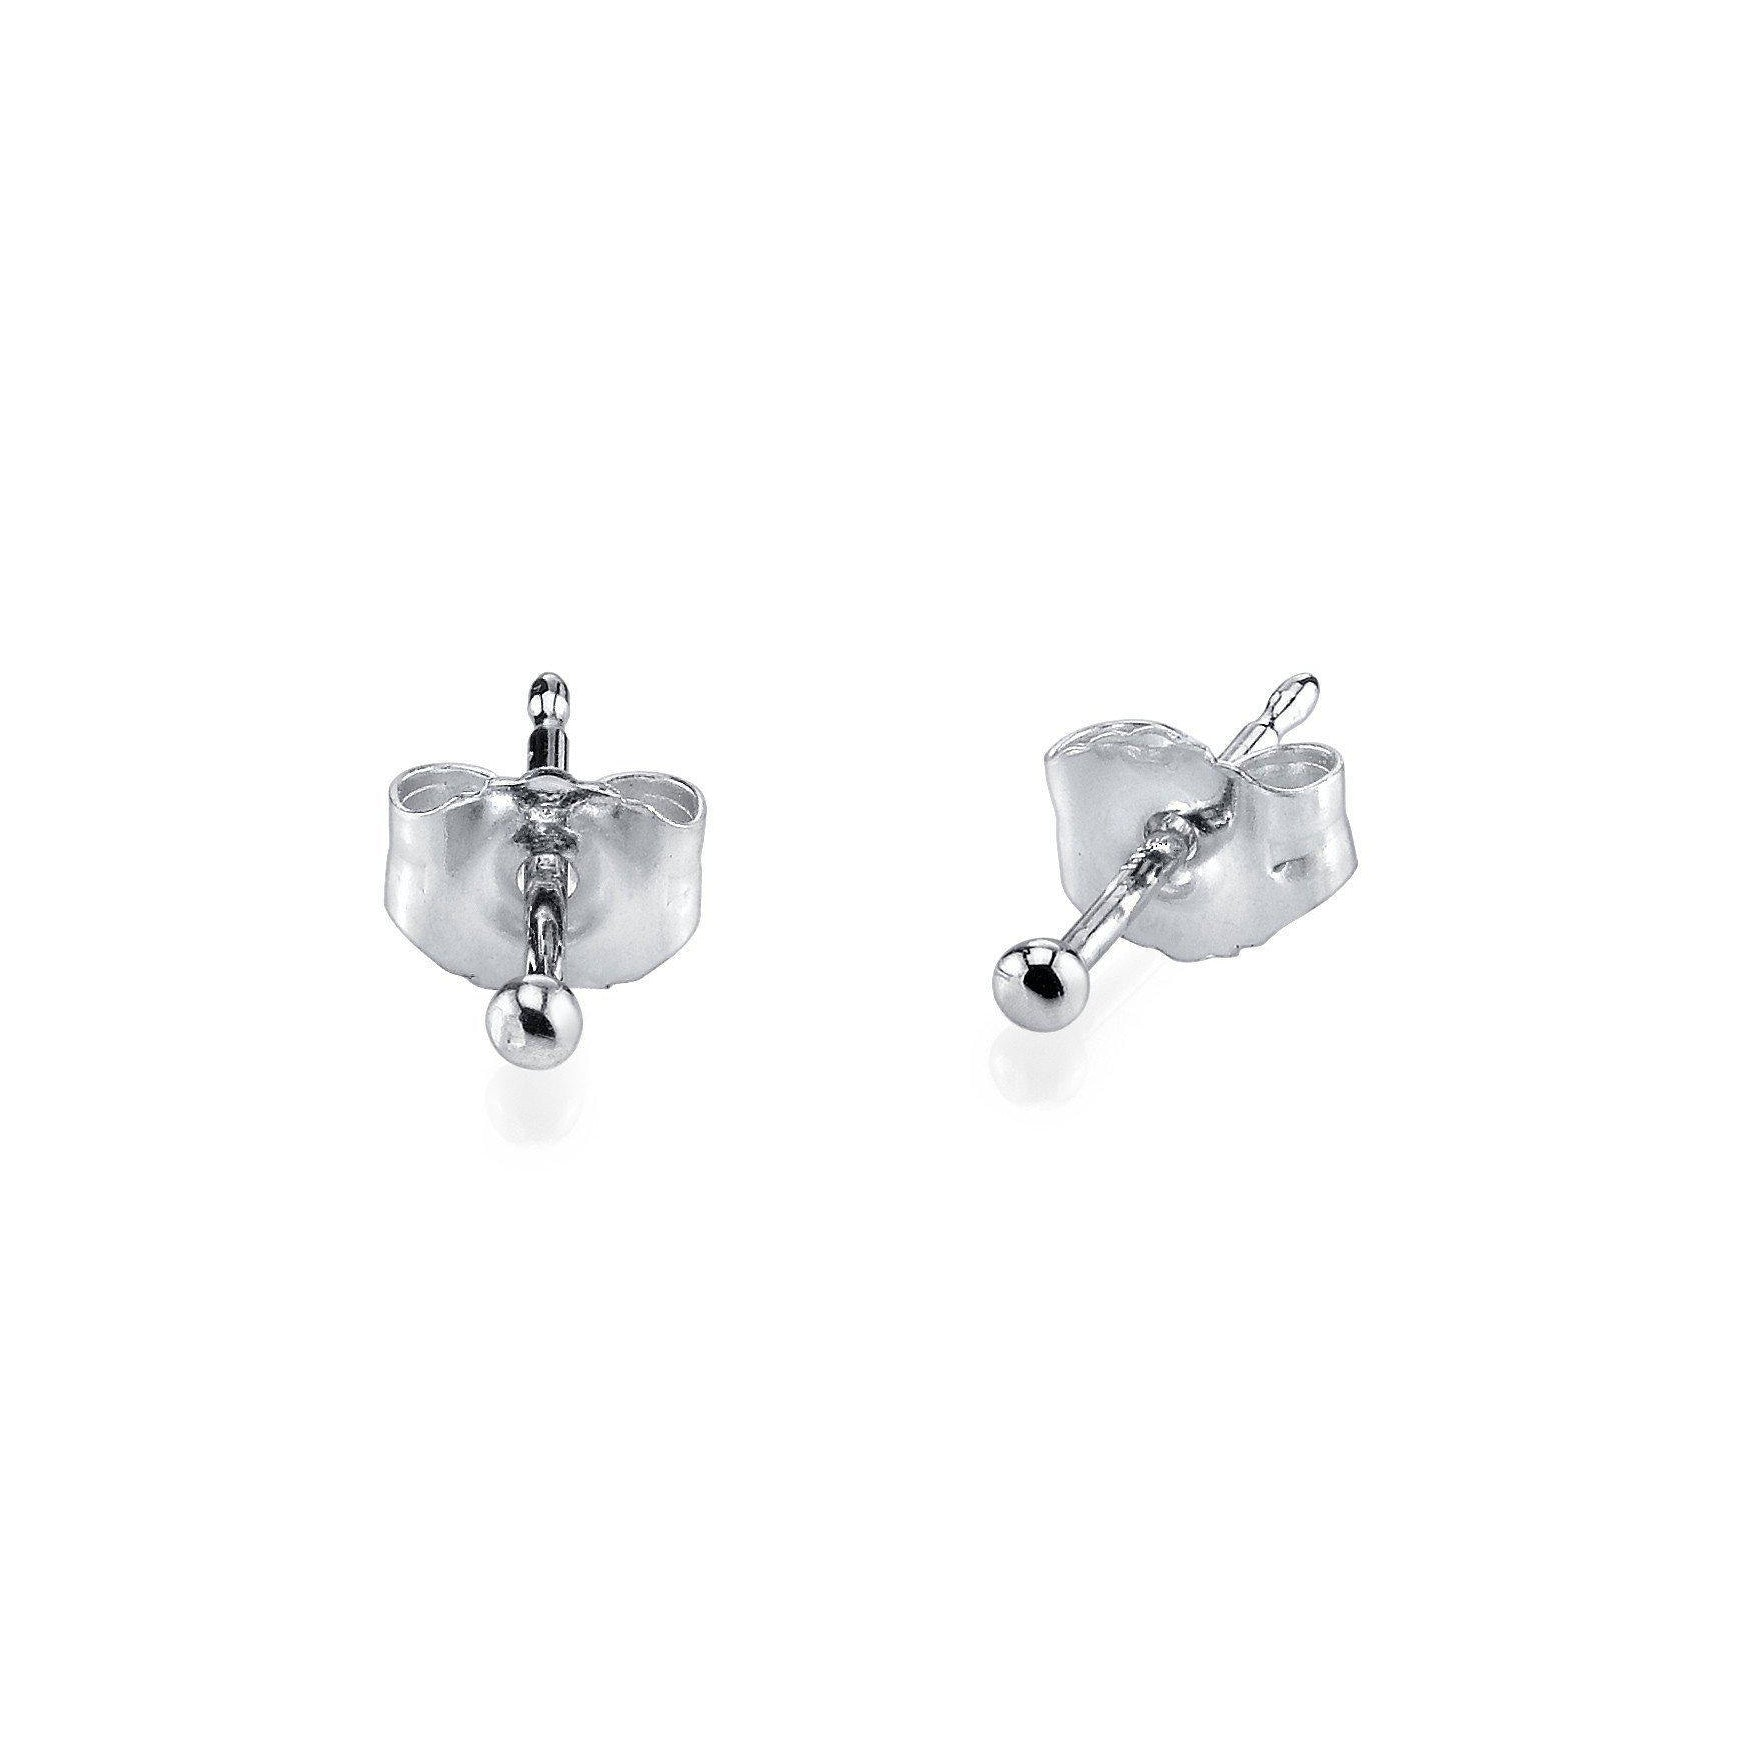 Gabriela Artigas Orbit Earrings (Pair)